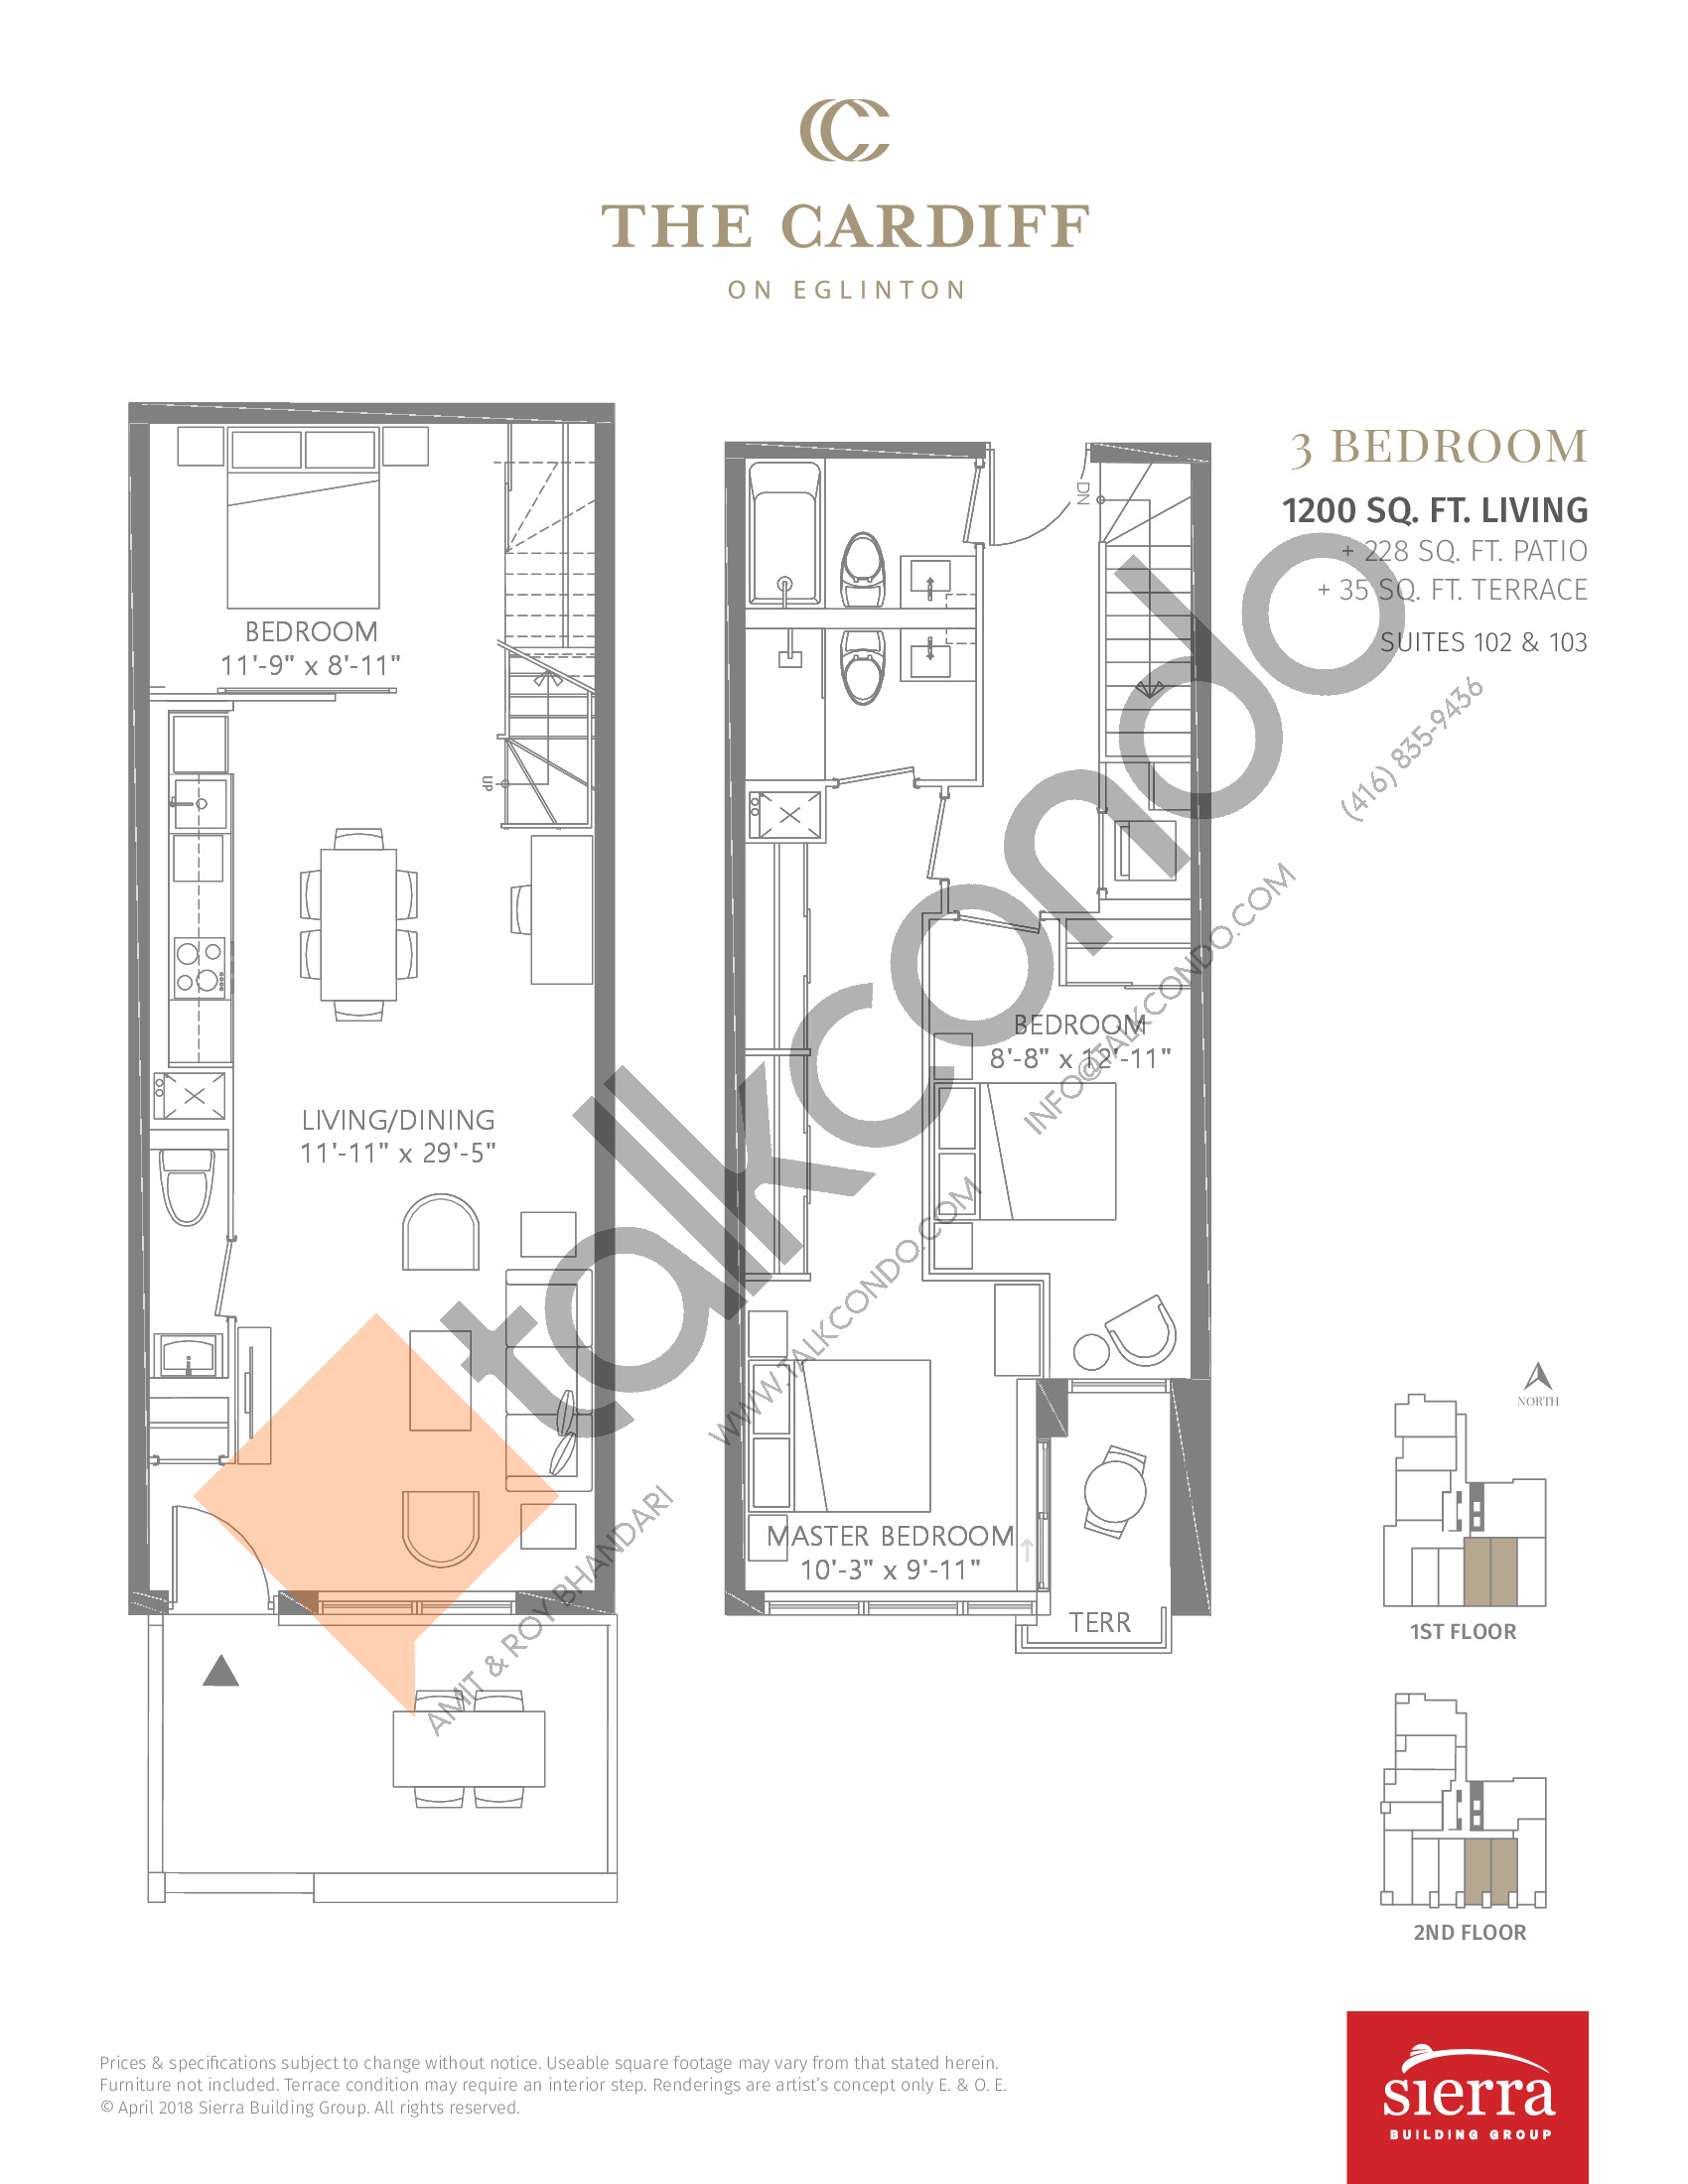 Suites 102 & 103 Floor Plan at The Cardiff Condos on Eglinton - 1200 sq.ft